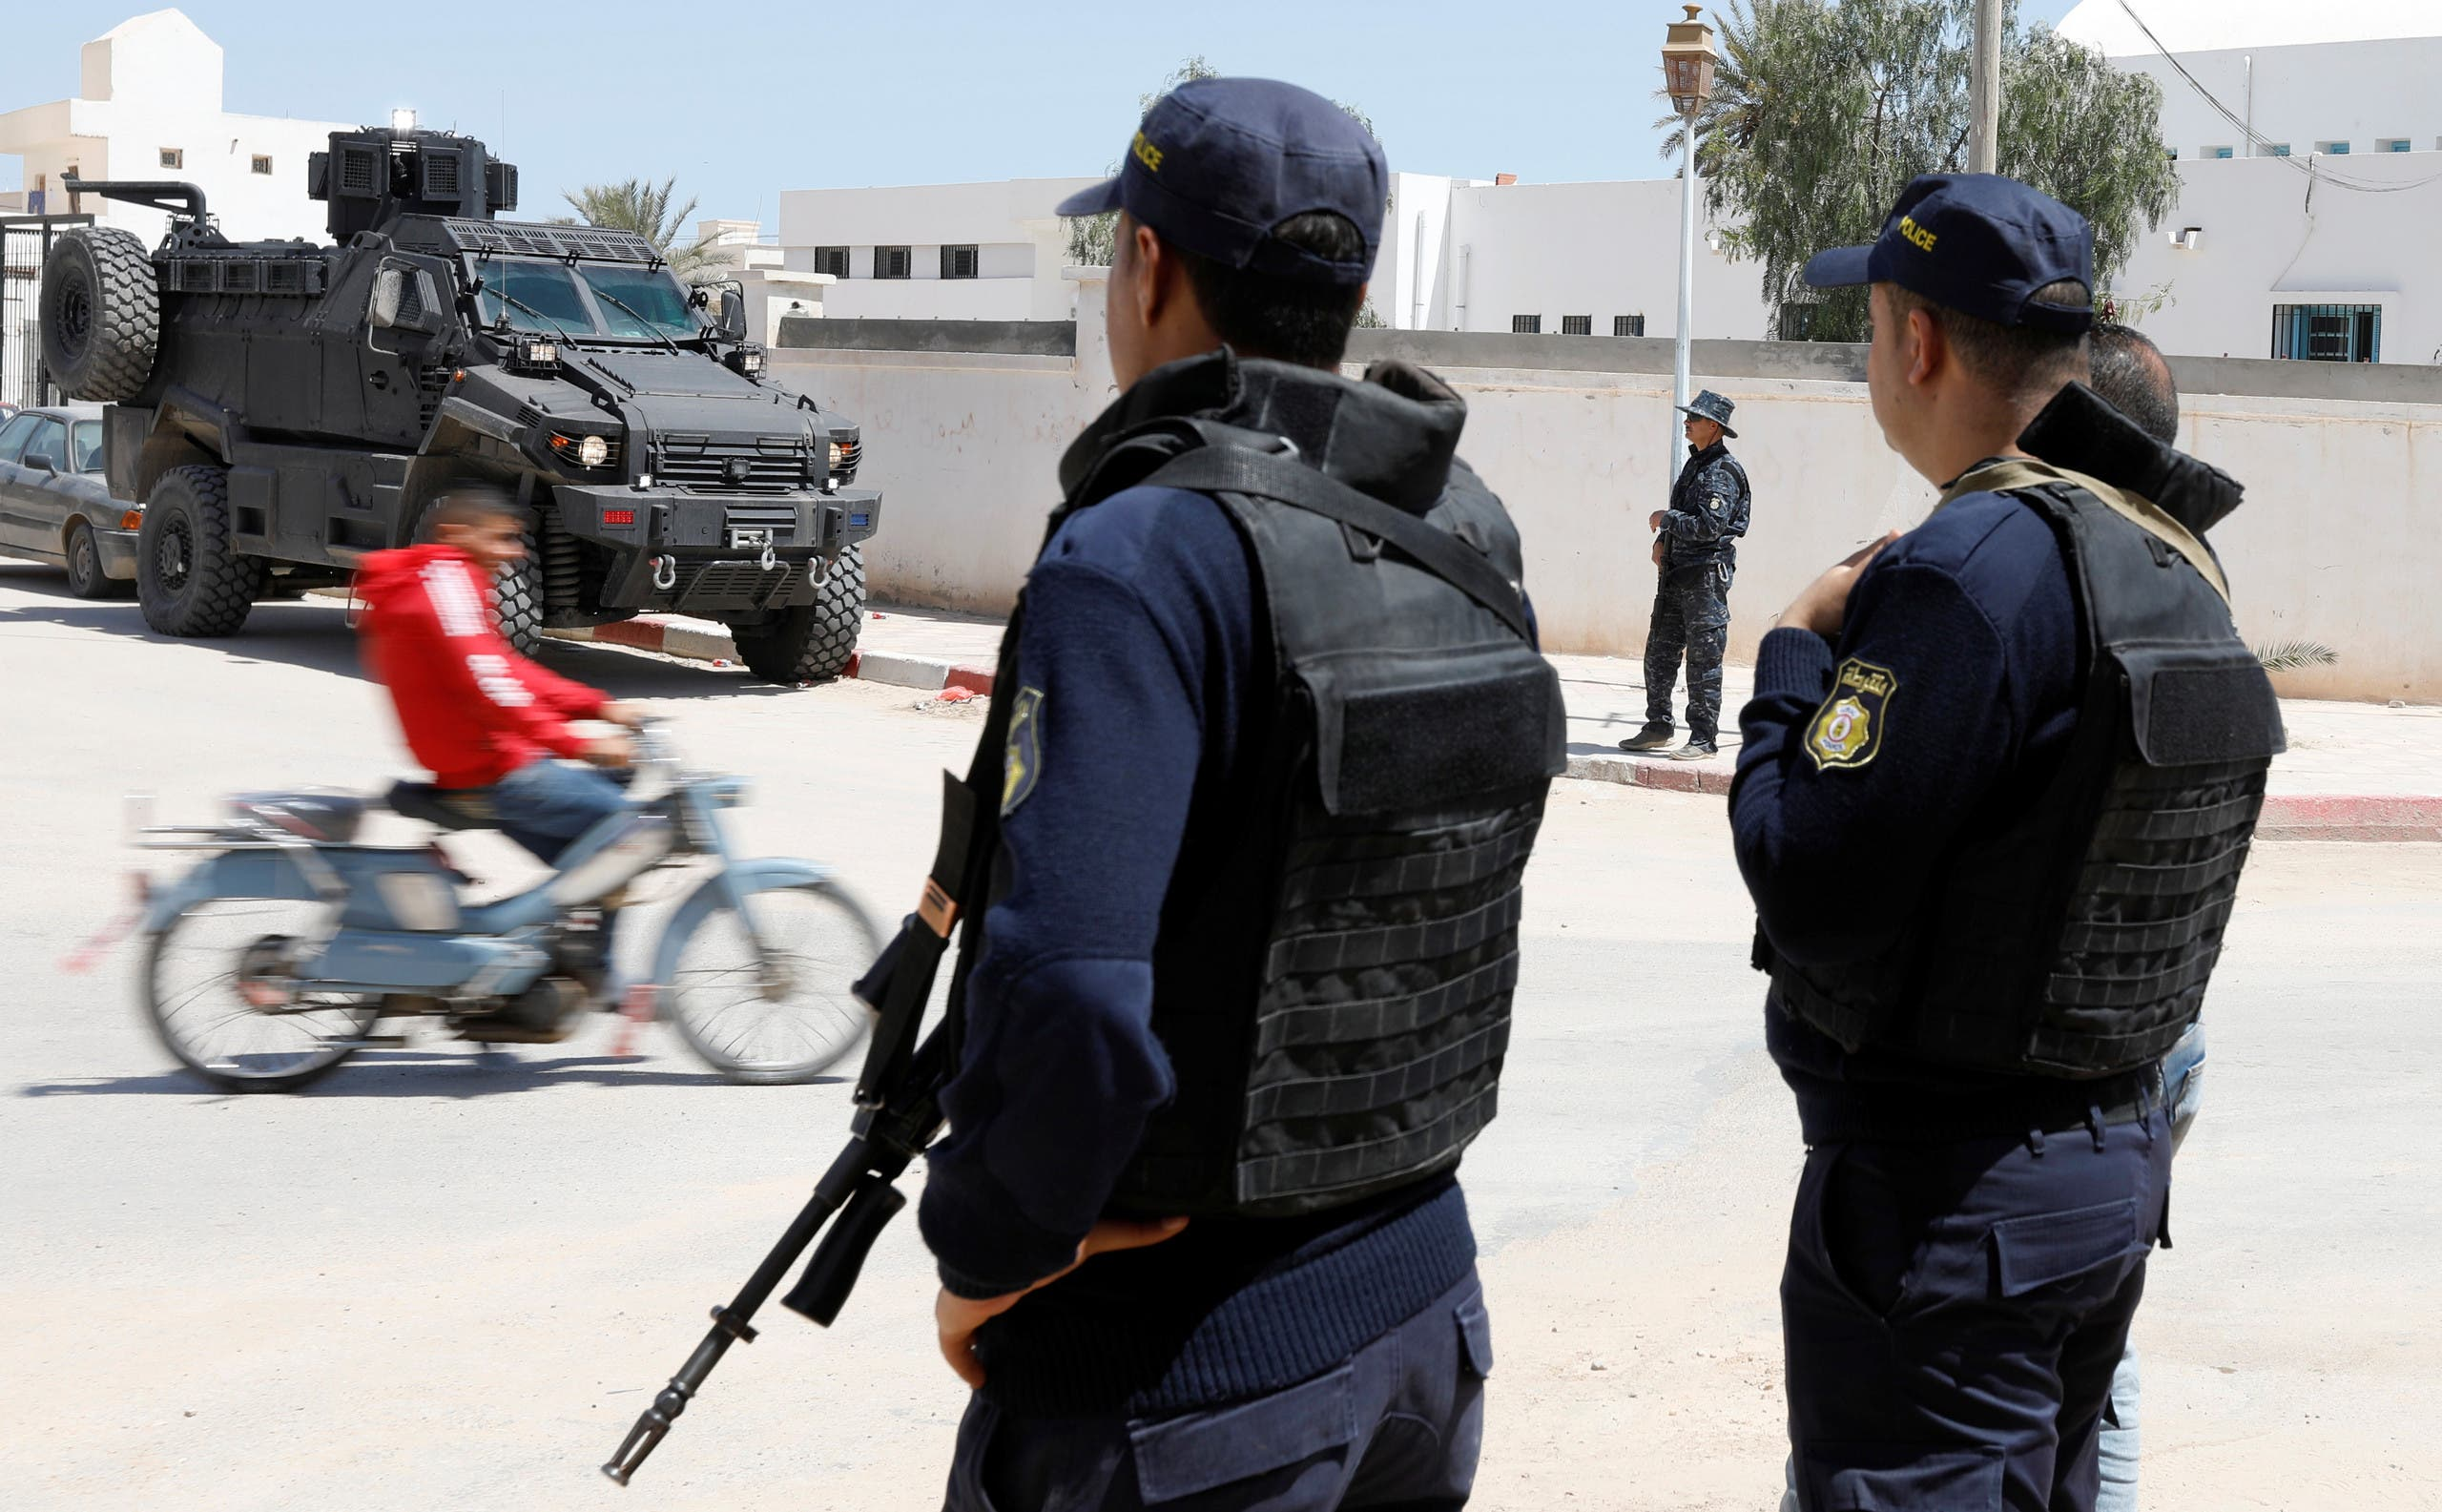 Police officers stand guard in the town of Ben Guerdane, near the Libyan border, in Tunisia on April 16, 2019.  (Reuters)